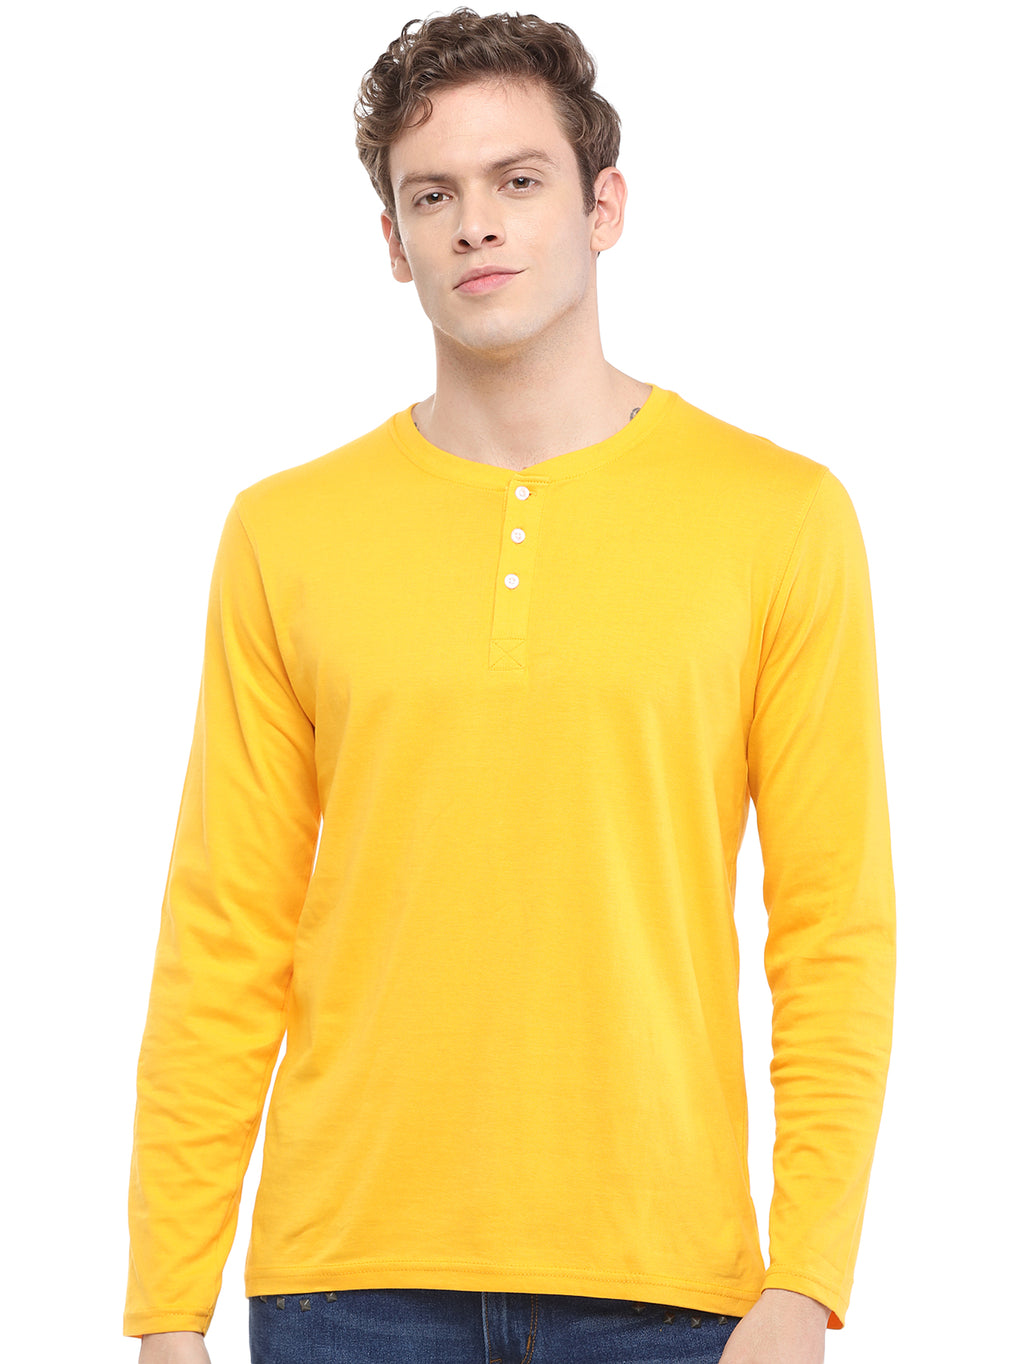 Rock Hooper - Men's Regular Fit Full Sleeve Henley Neck Mustard Yellow Cotton T-shirt